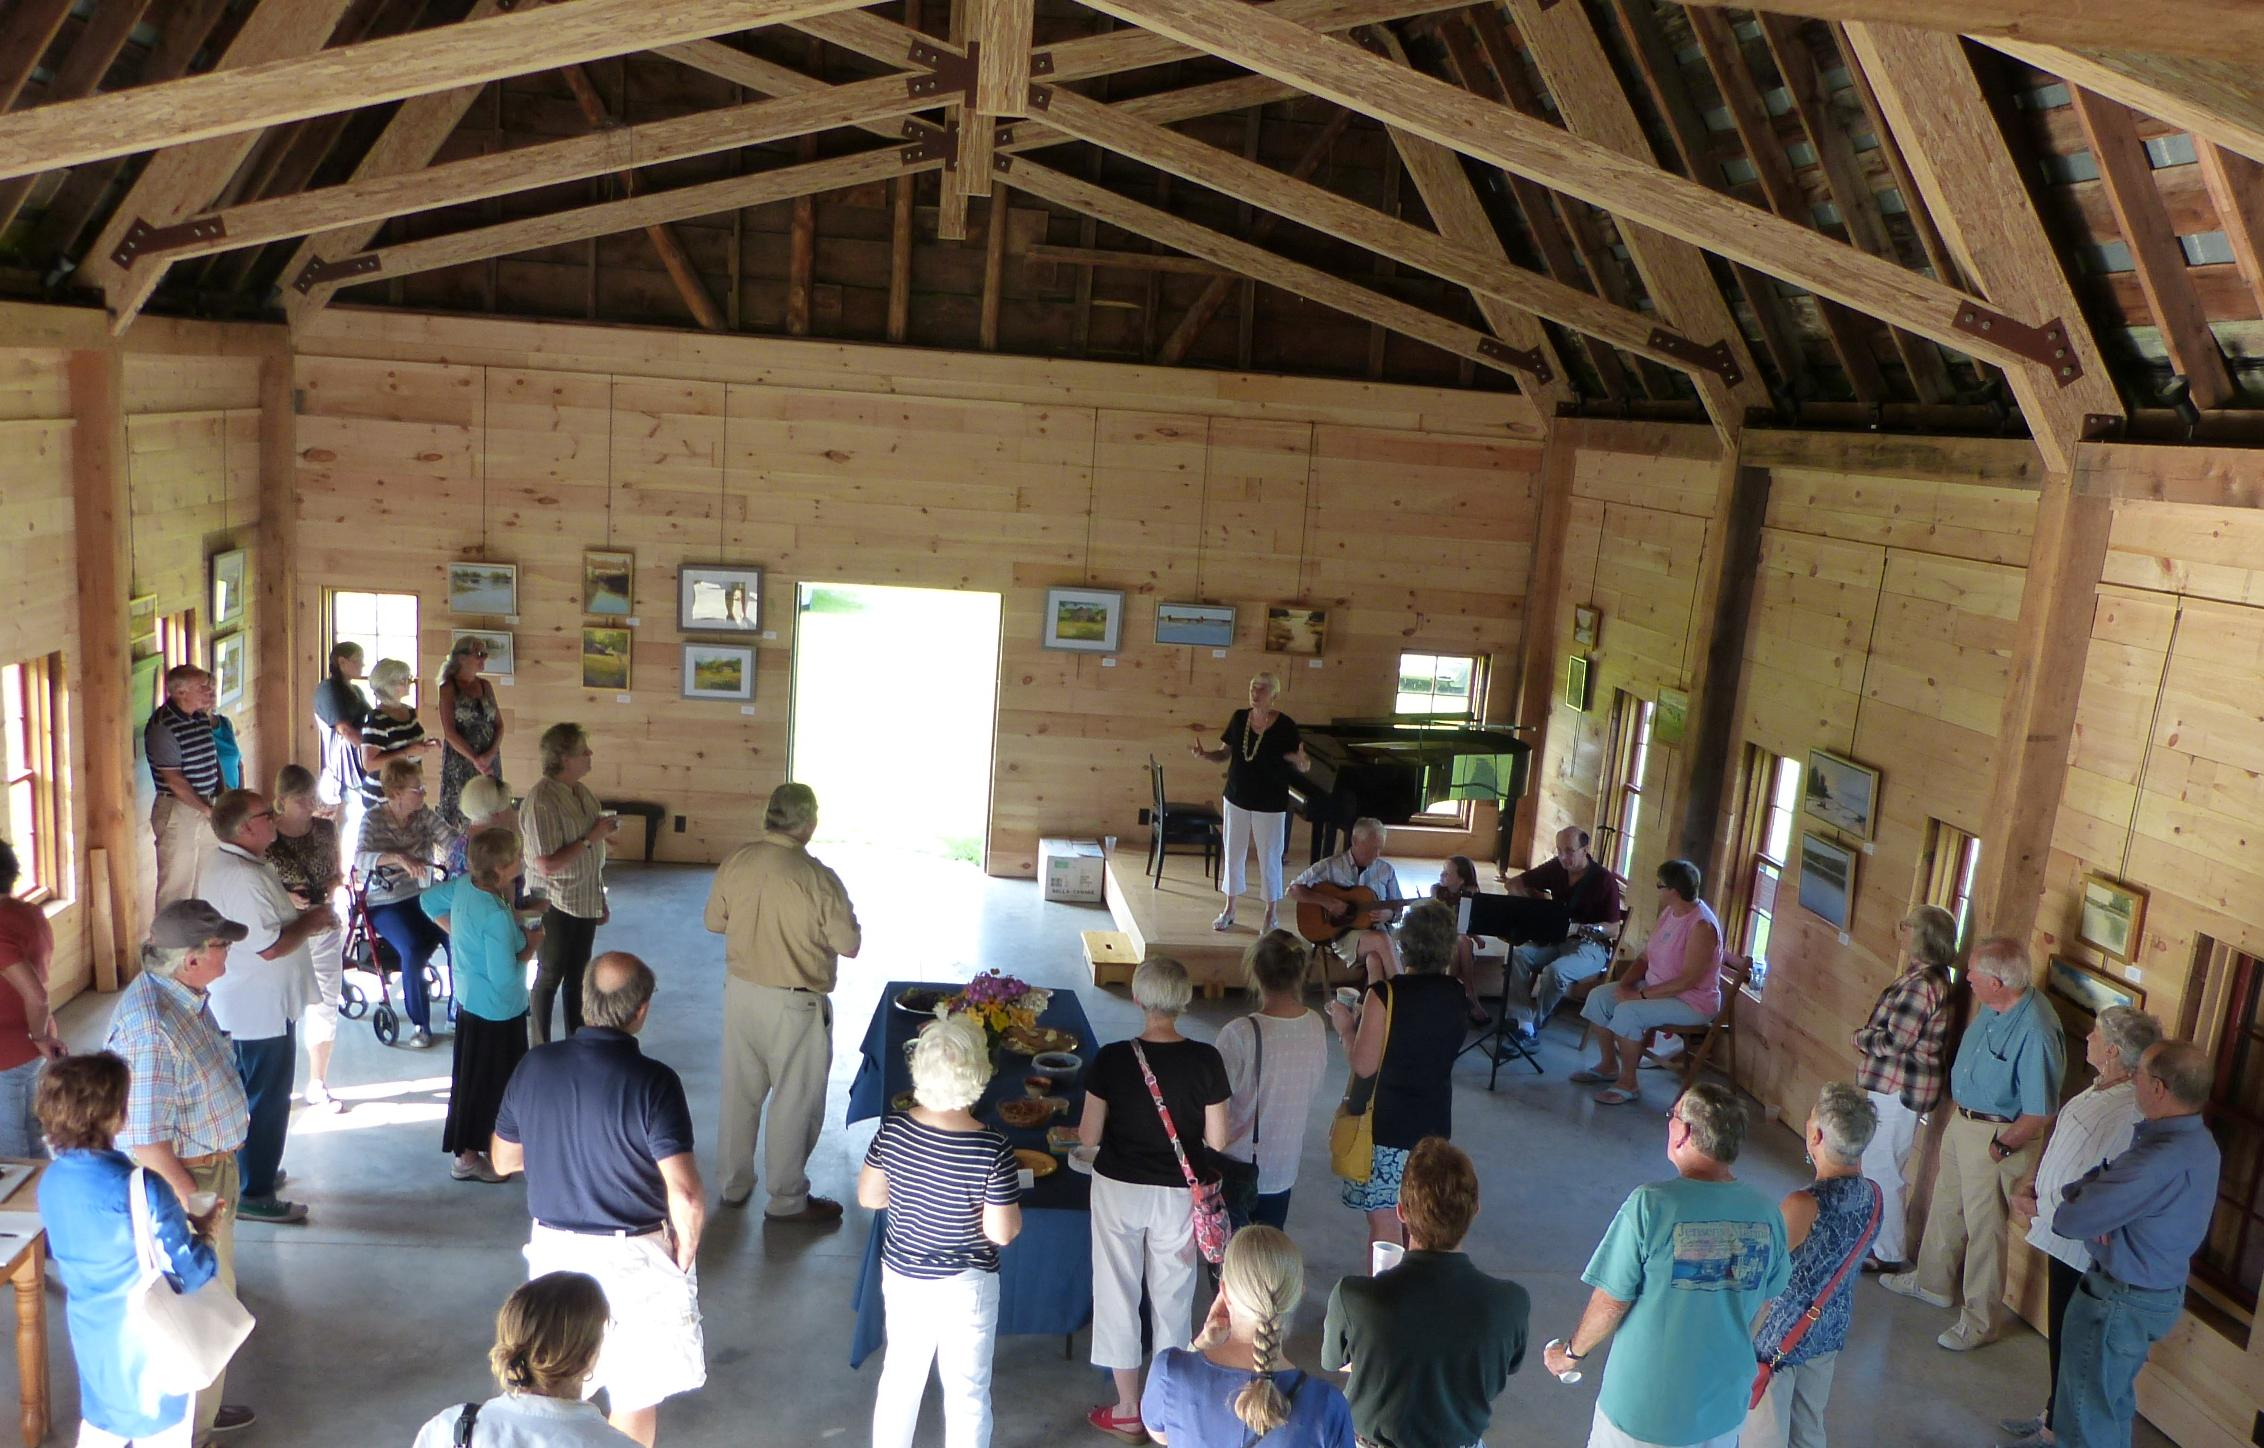 The North Room of the  Conservation Barn serves for community gatherings and events.